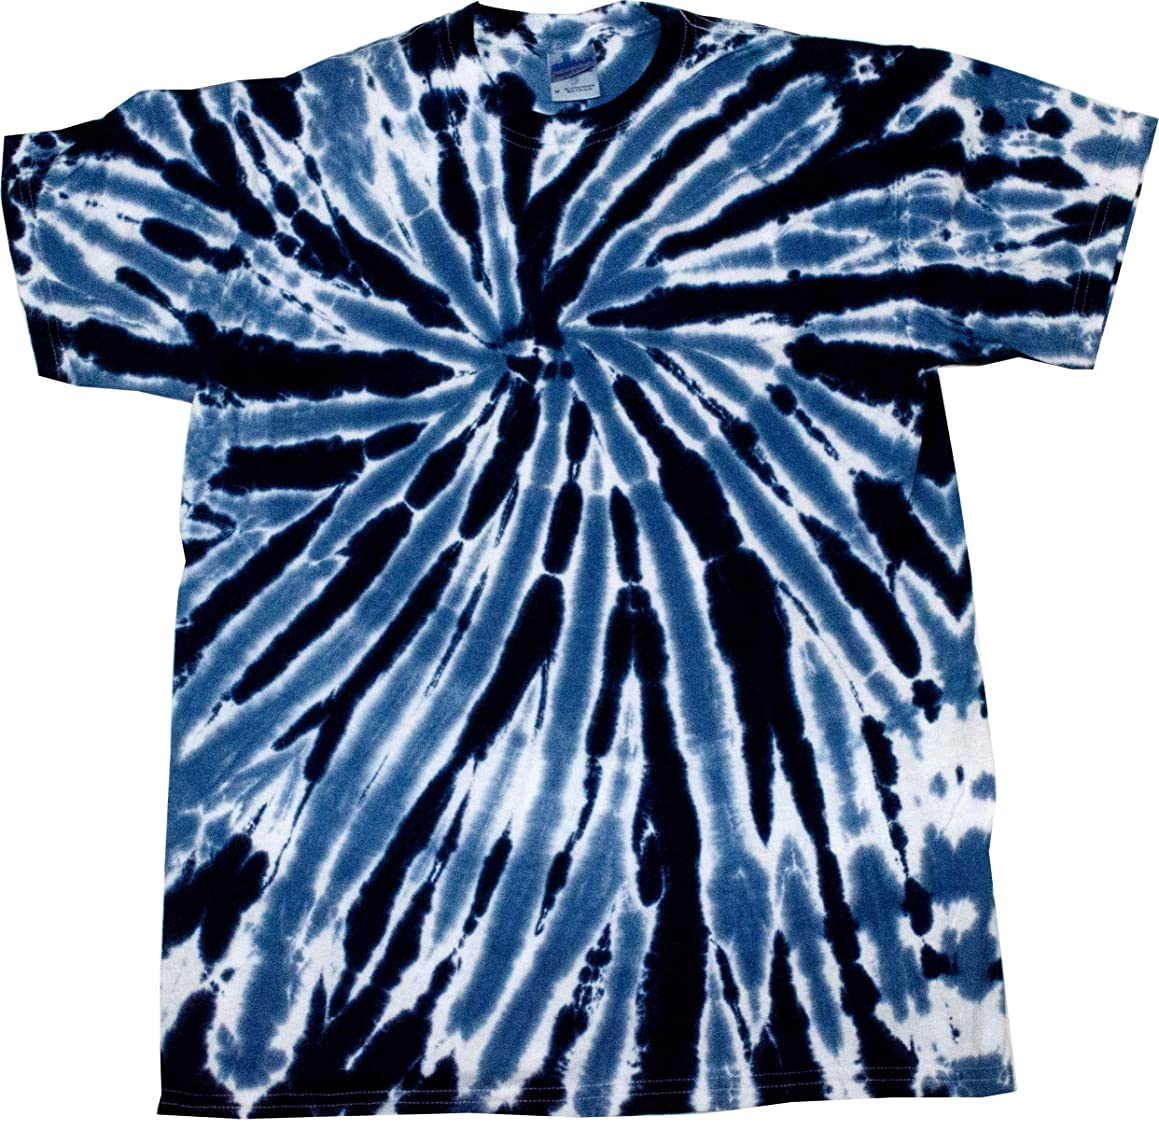 Colortone Tie Dye Twist Neon T-Shirt Kids & Adult up to 5XL